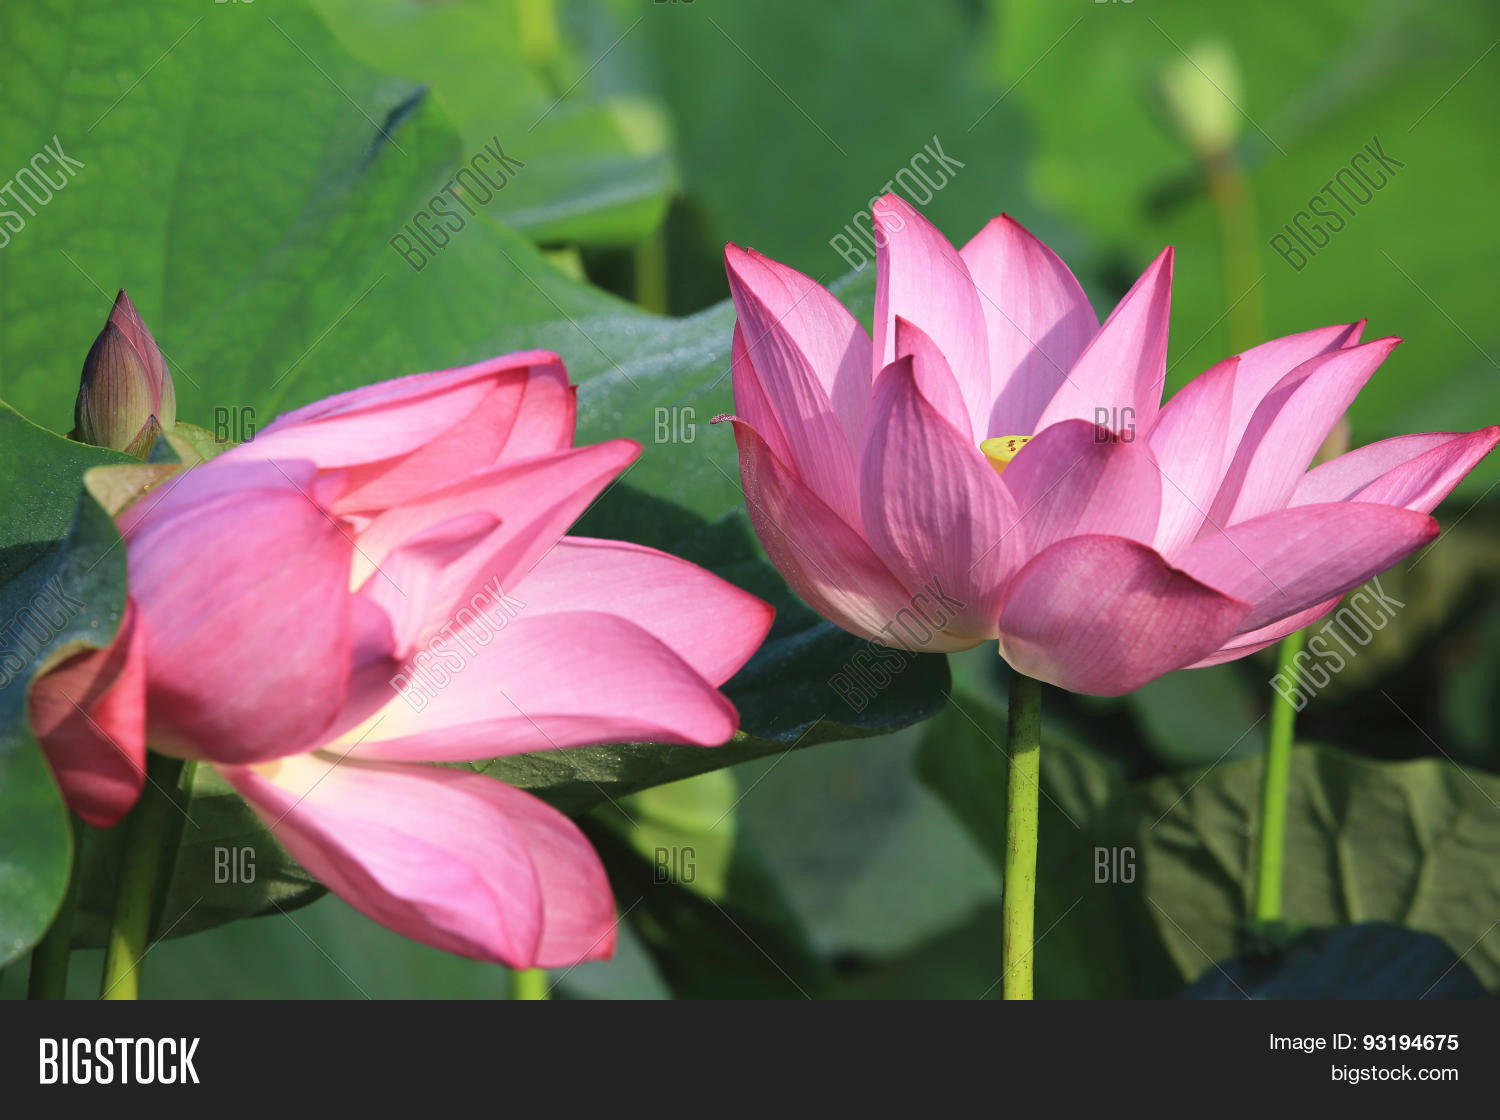 Lotus flowers bud image photo free trial bigstock lotus flowers and bud izmirmasajfo